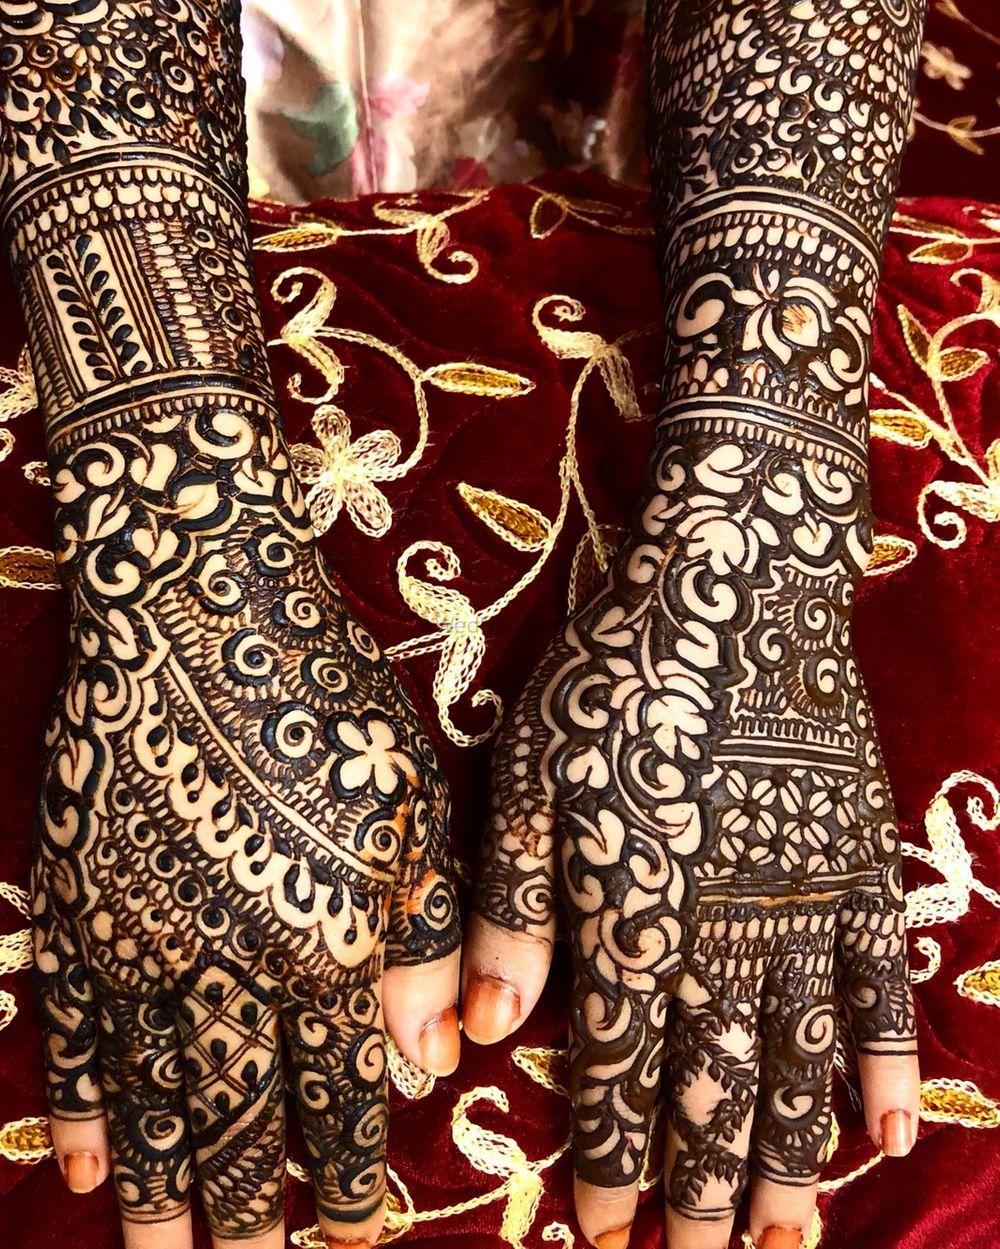 Photo By Maseera Mehendi Artist - Mehendi Artist